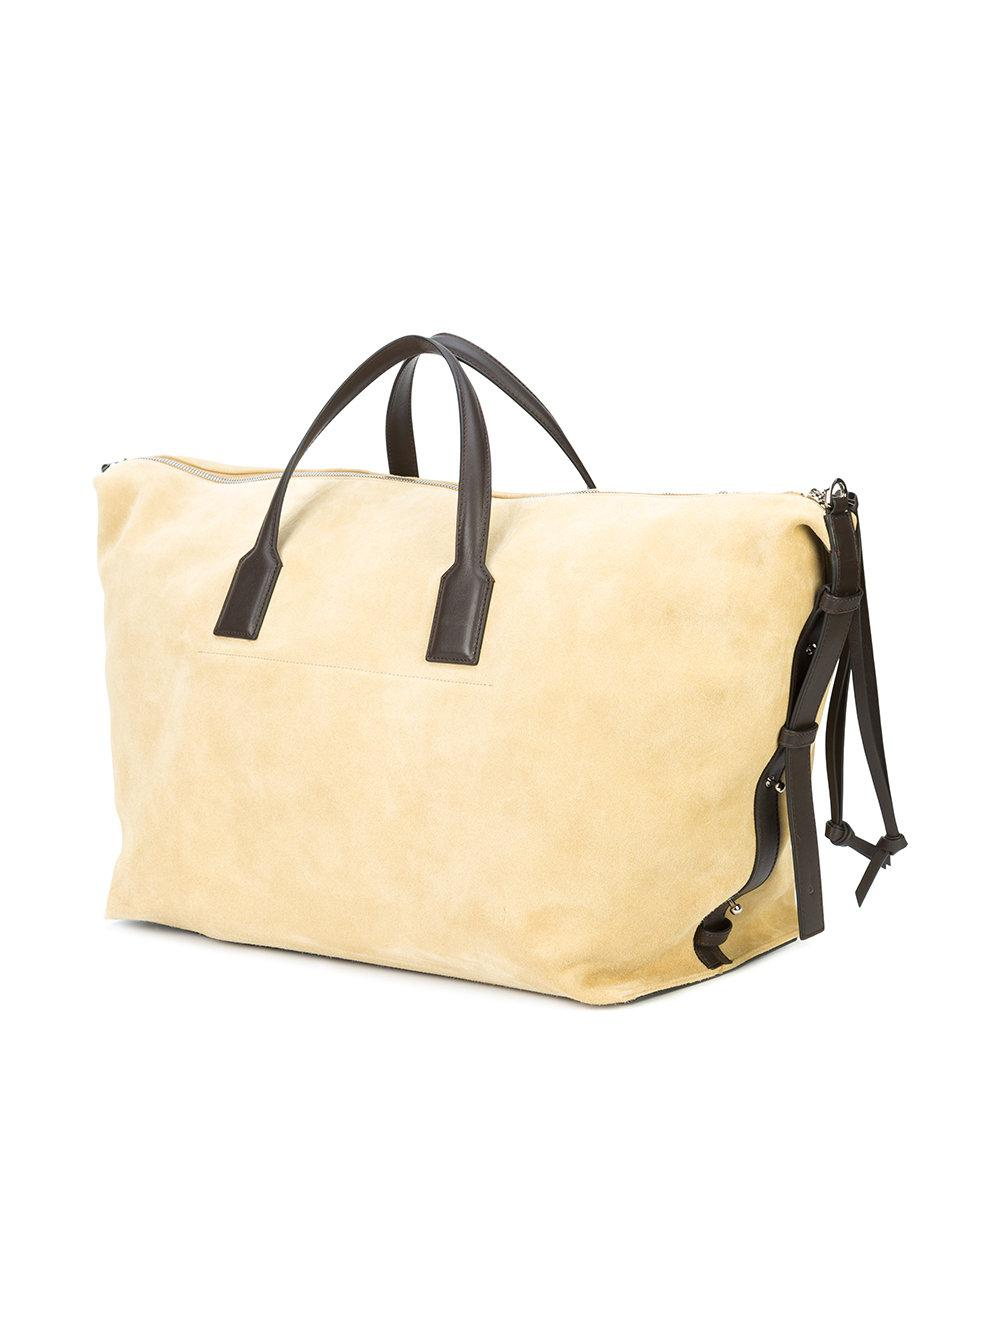 94648b40a769 Gallery. Previously sold at  Farfetch · Men s Weekend Bags